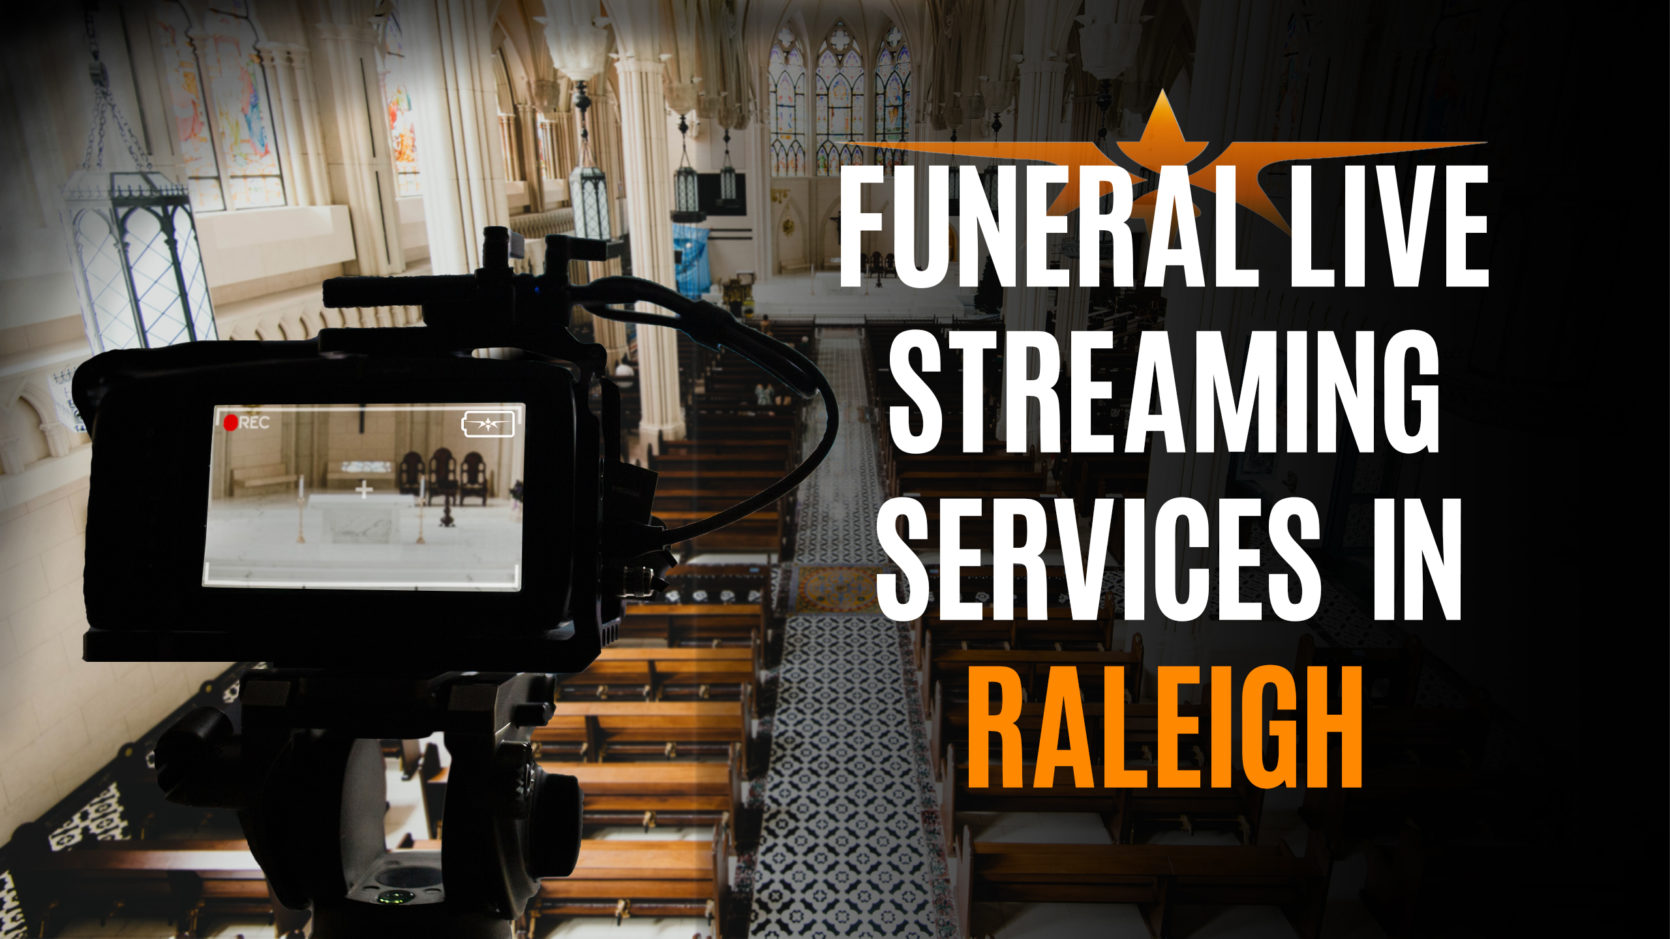 Funeral Live Streaming Services in Raleigh